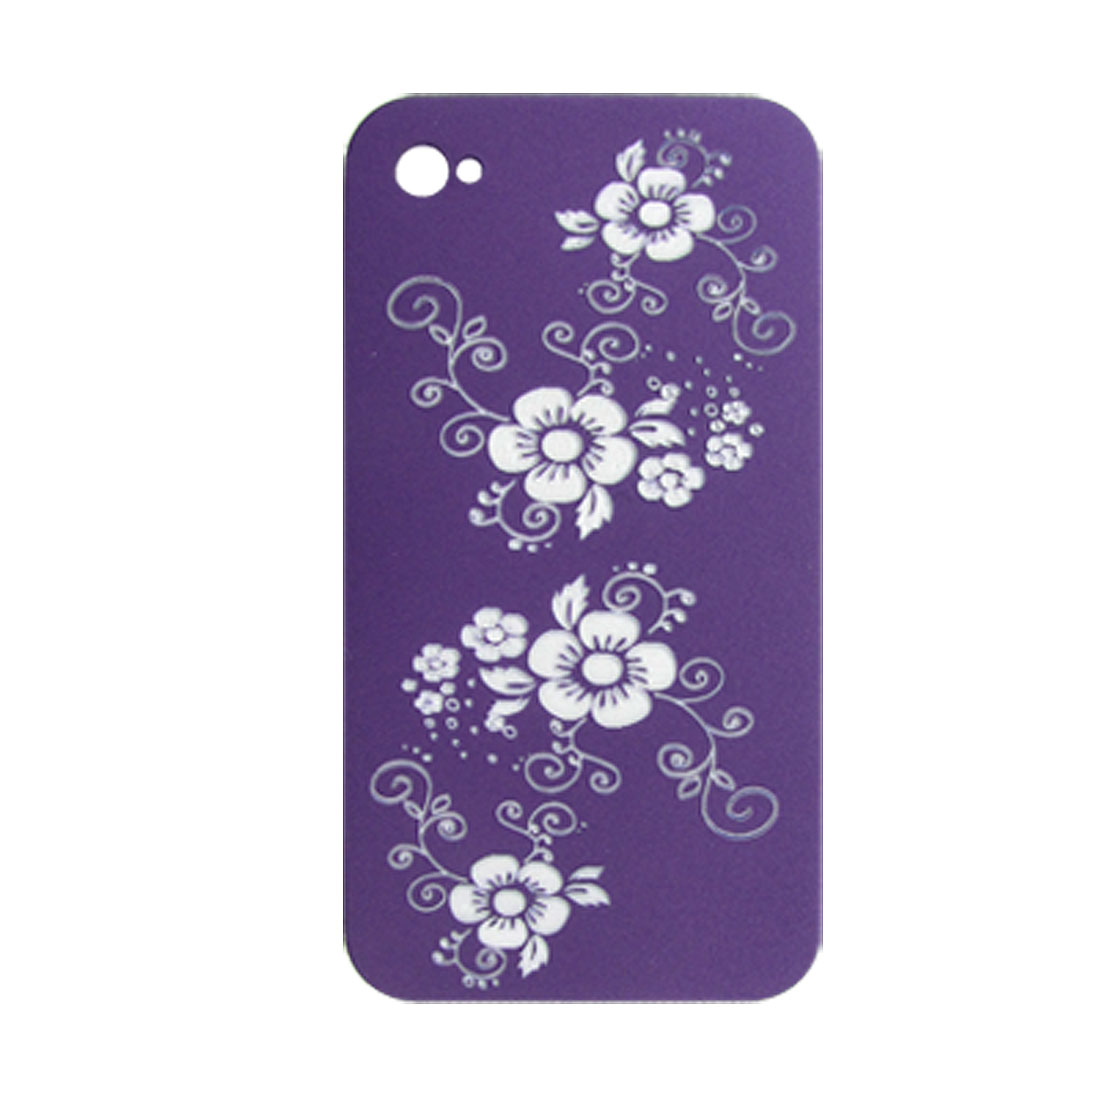 Carved Plum Blossom Hard Plastic Back Case for iPhone 4 4G